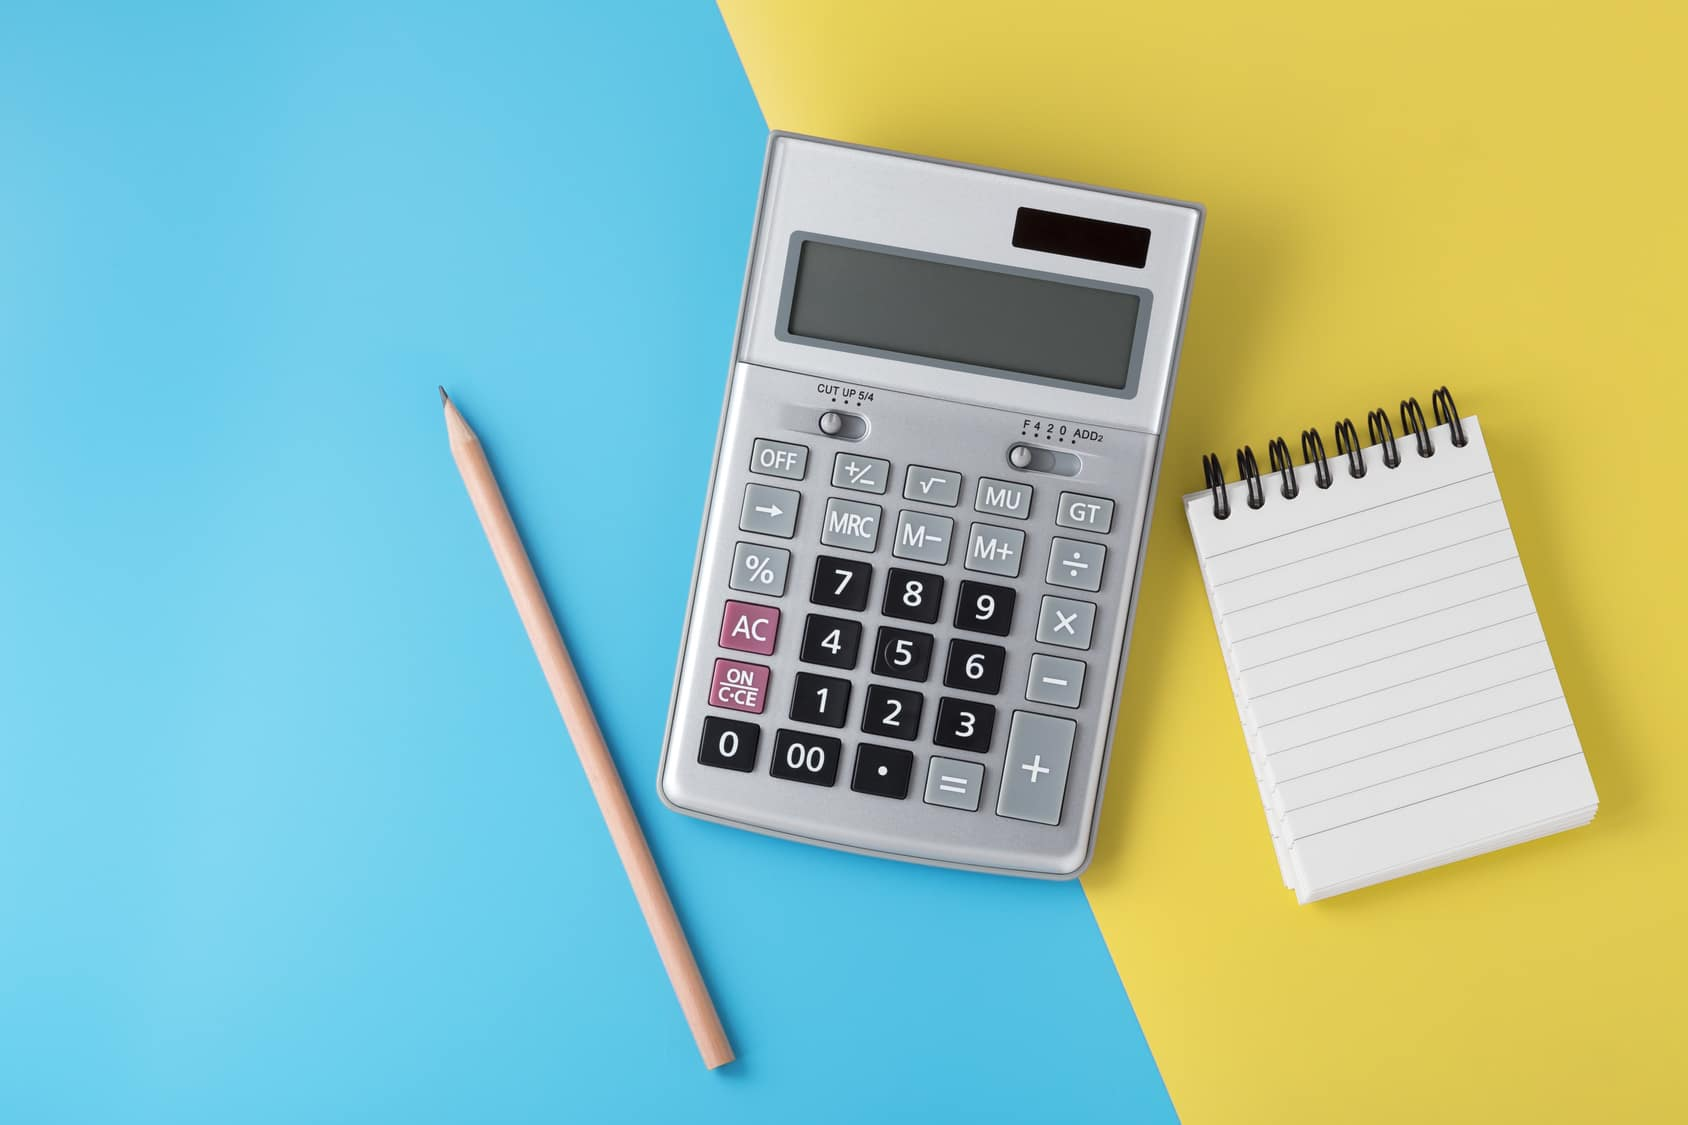 Calculator on light blue and yellow background with notepad and pencil, flat lay with space